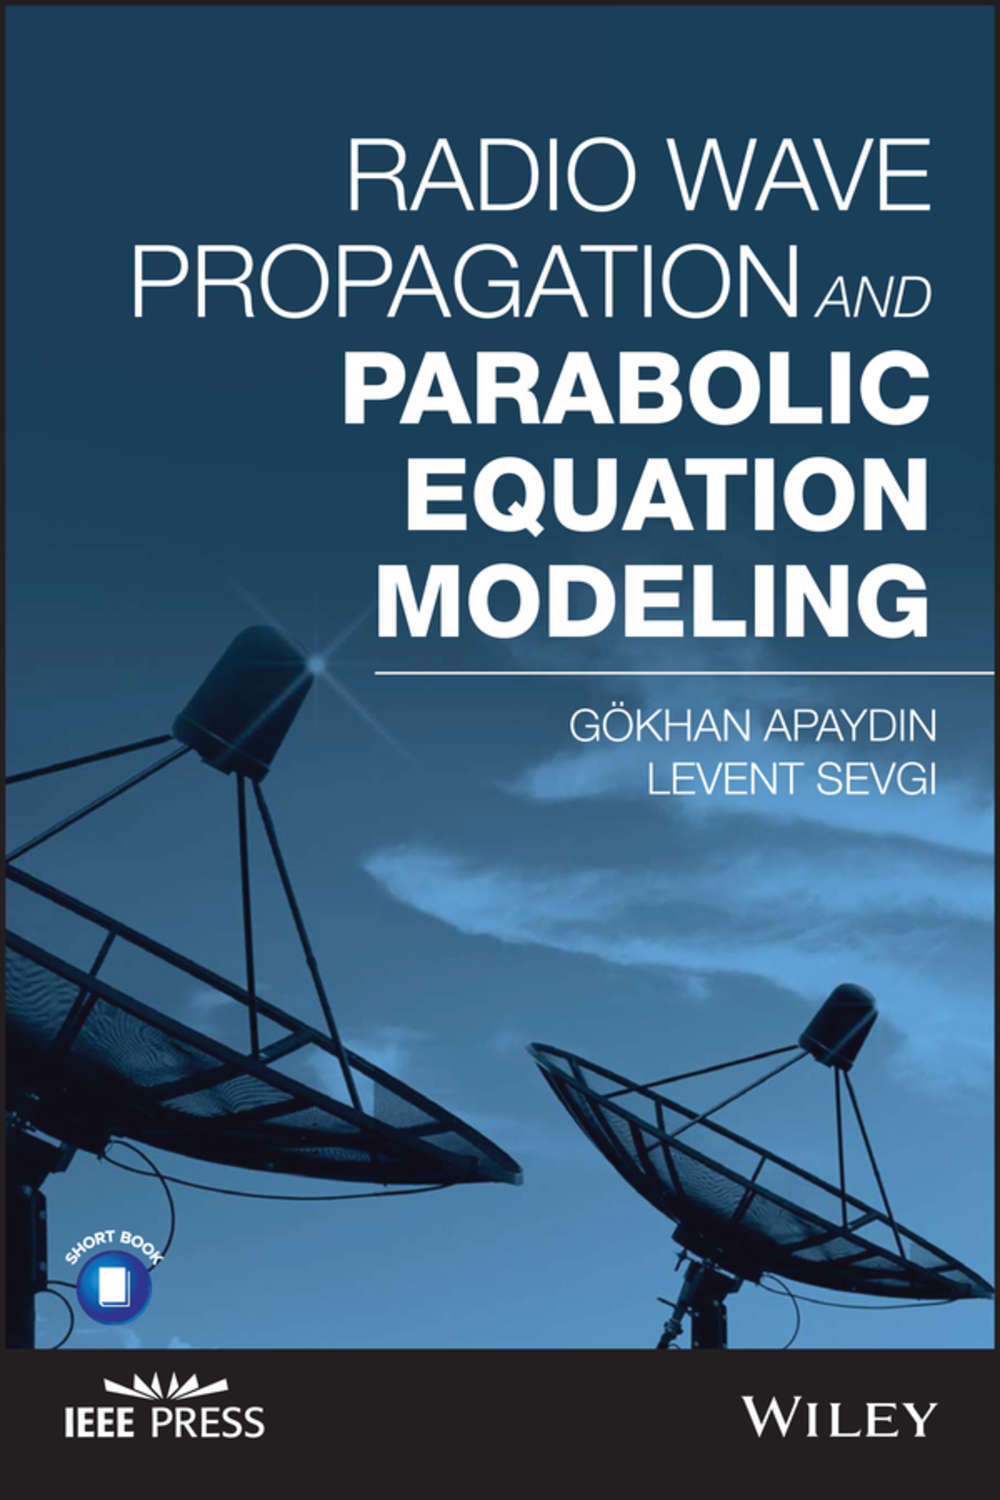 Radio Wave Propagation and Parabolic Equation Modeling